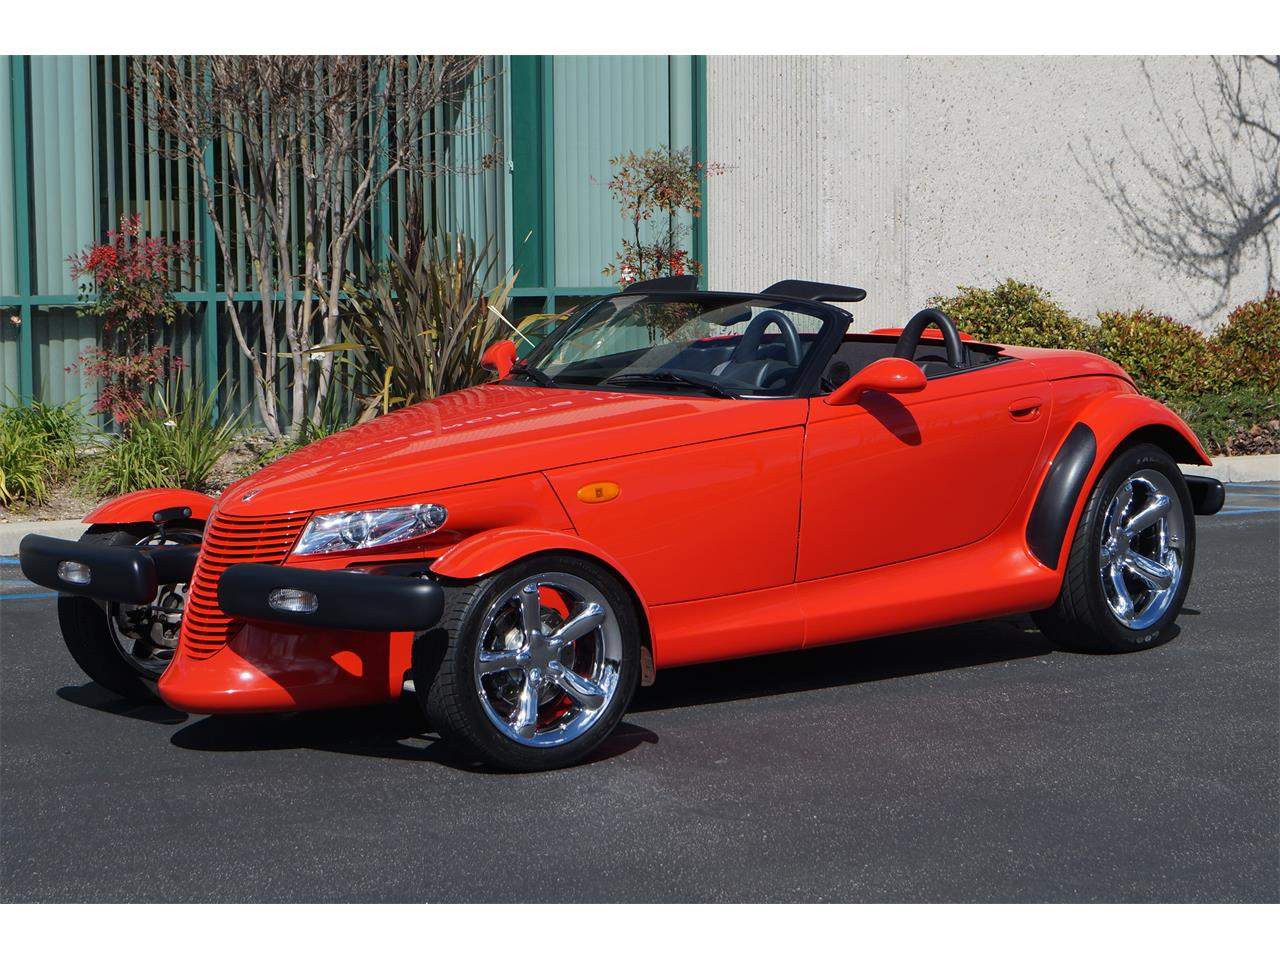 2000 Plymouth Prowler for sale in Thousand Oaks, CA – photo 2